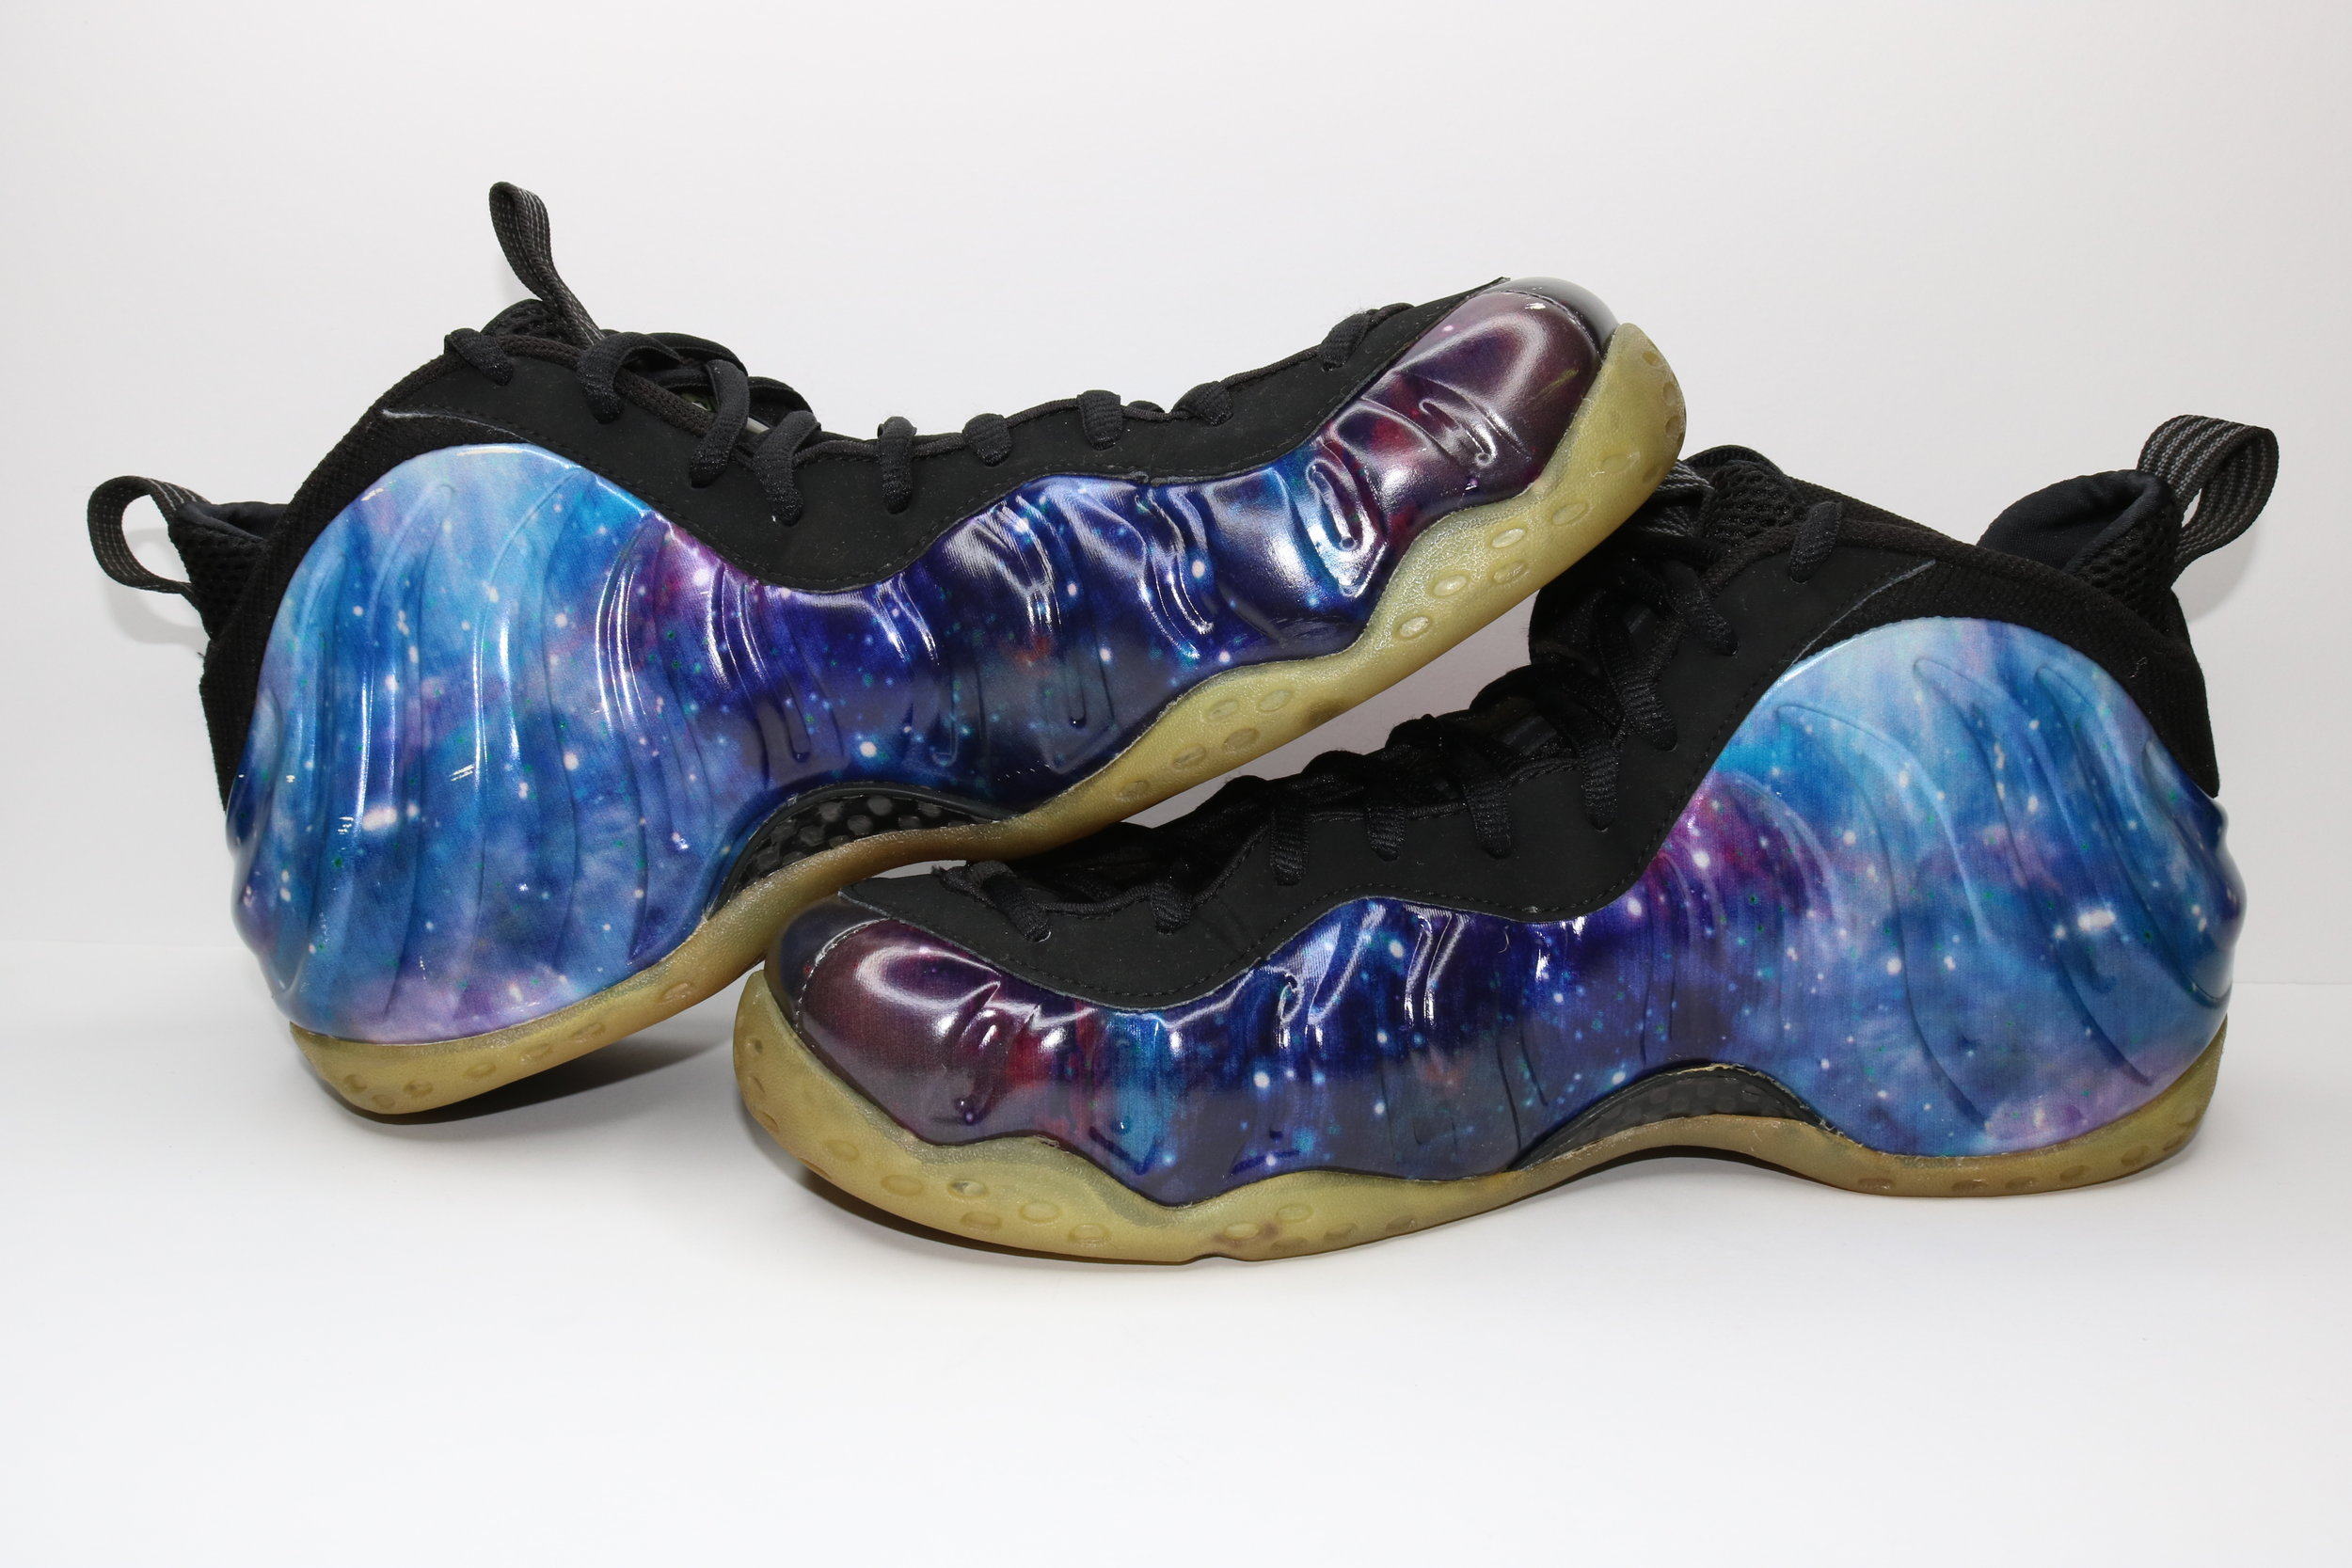 new concept b7d95 f32c3 US 12.0 - NIKE AIR FOAMPOSITE ONE NRG